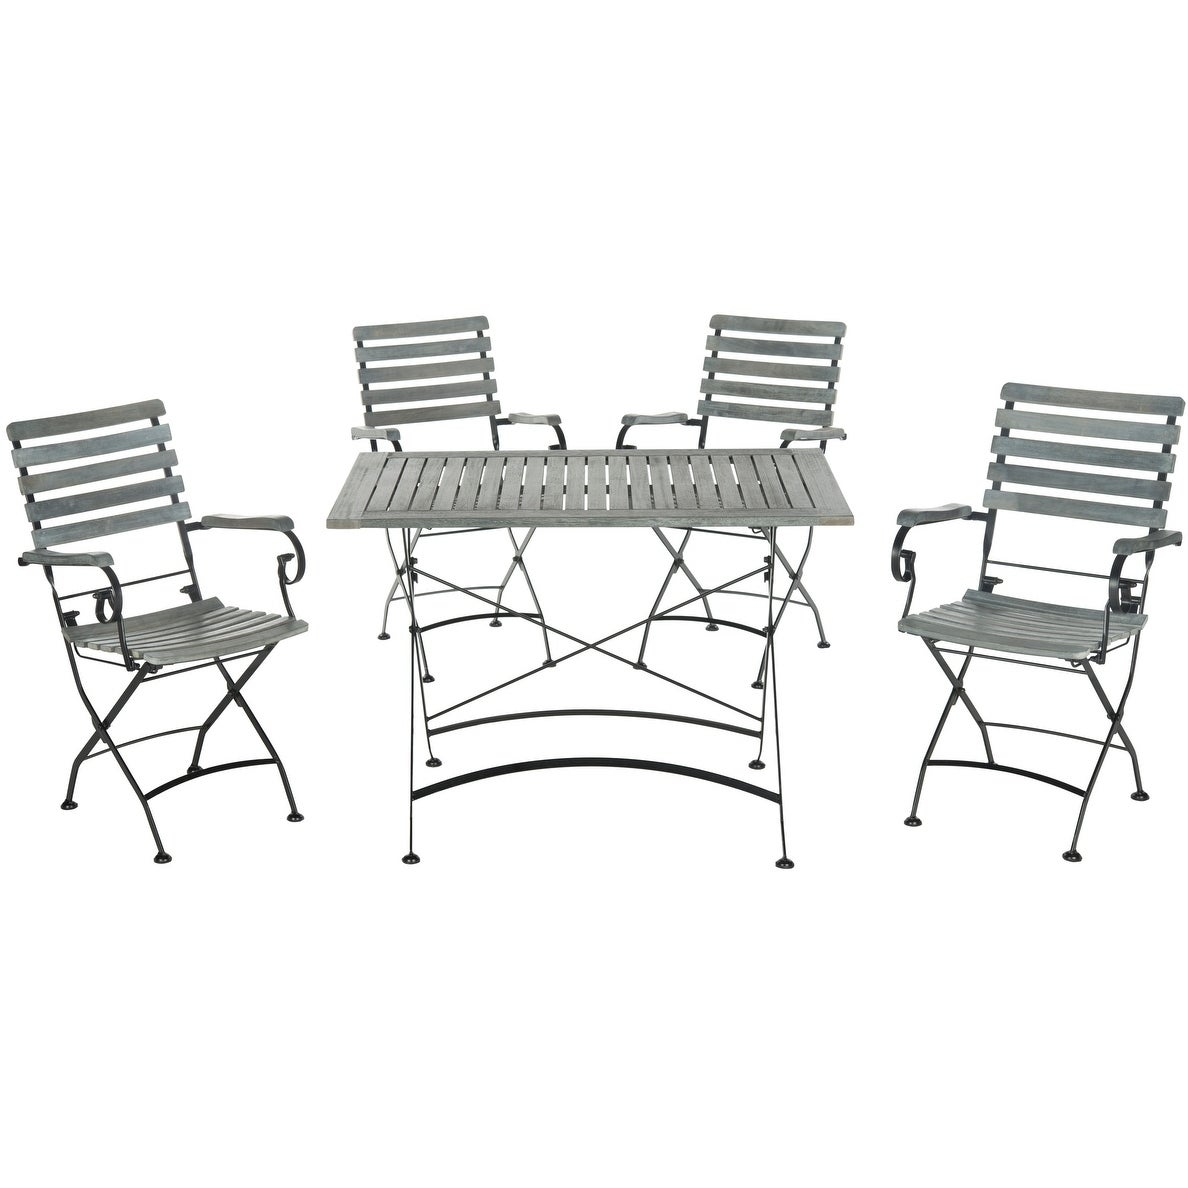 Safavieh Outdoor Living Lawndale Ash Grey Acacia Wood 5-piece Dining Set at Sears.com